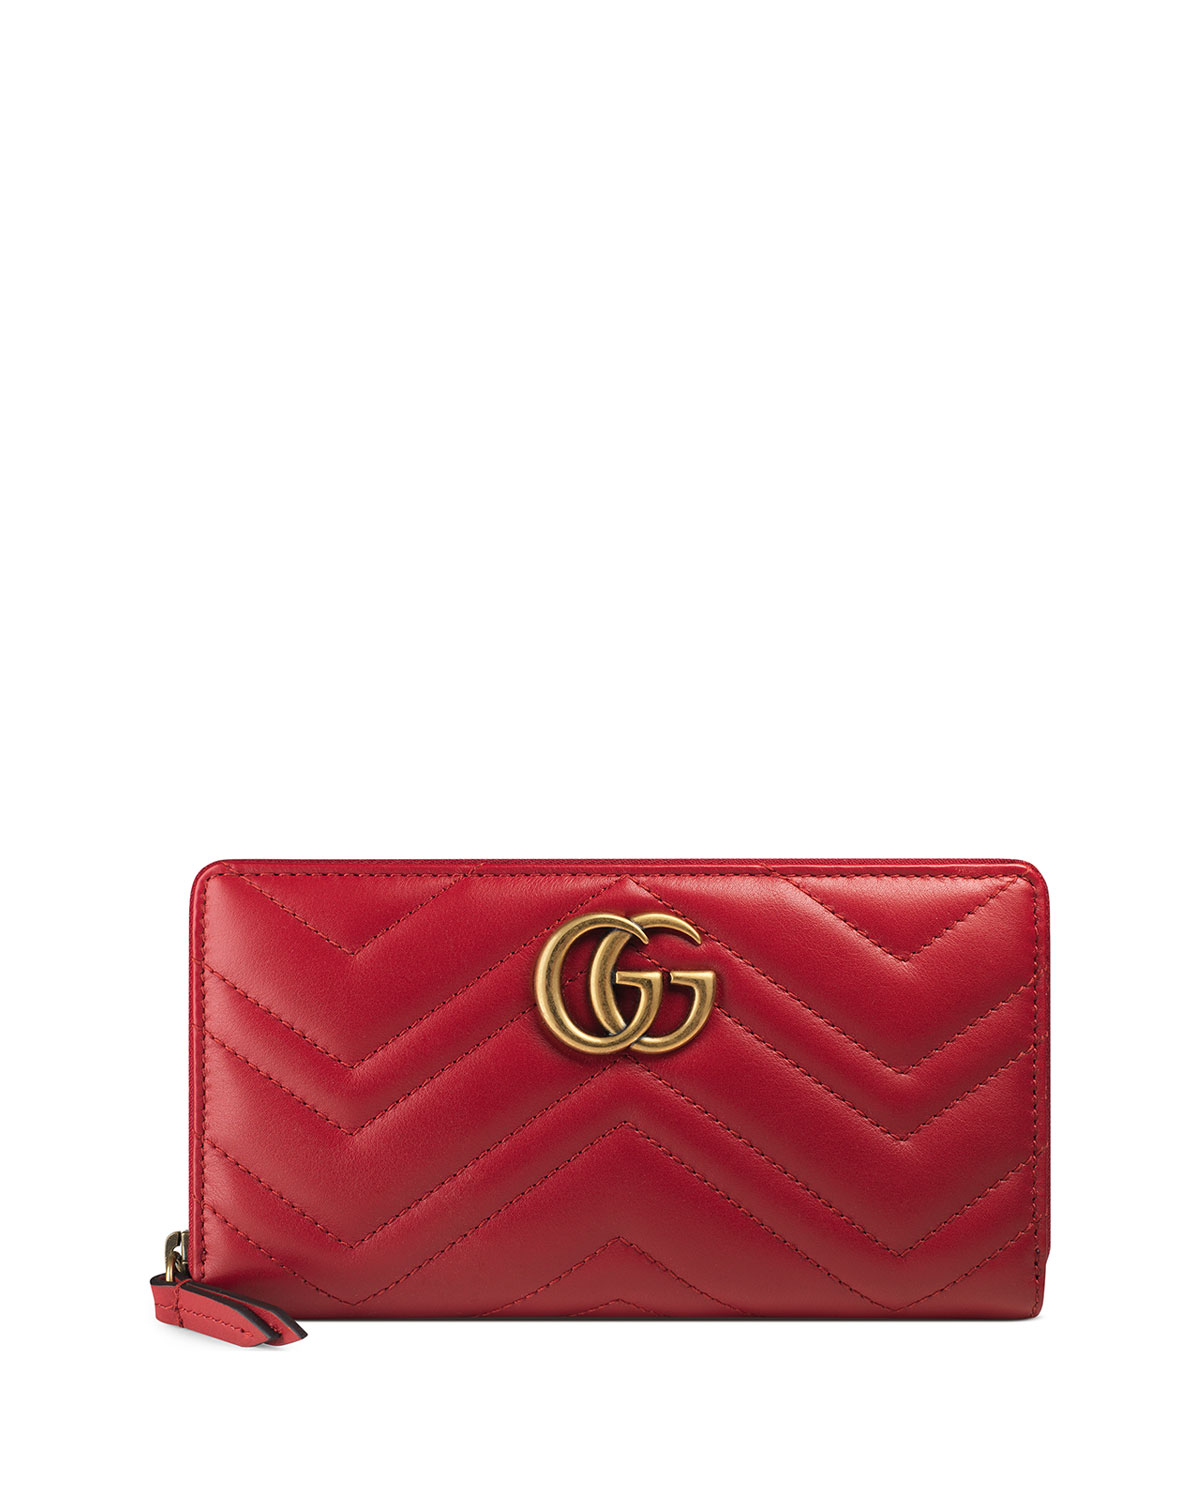 5525f1a64 Gucci GG Marmont Medium Quilted Zip Wallet, Red | Neiman Marcus